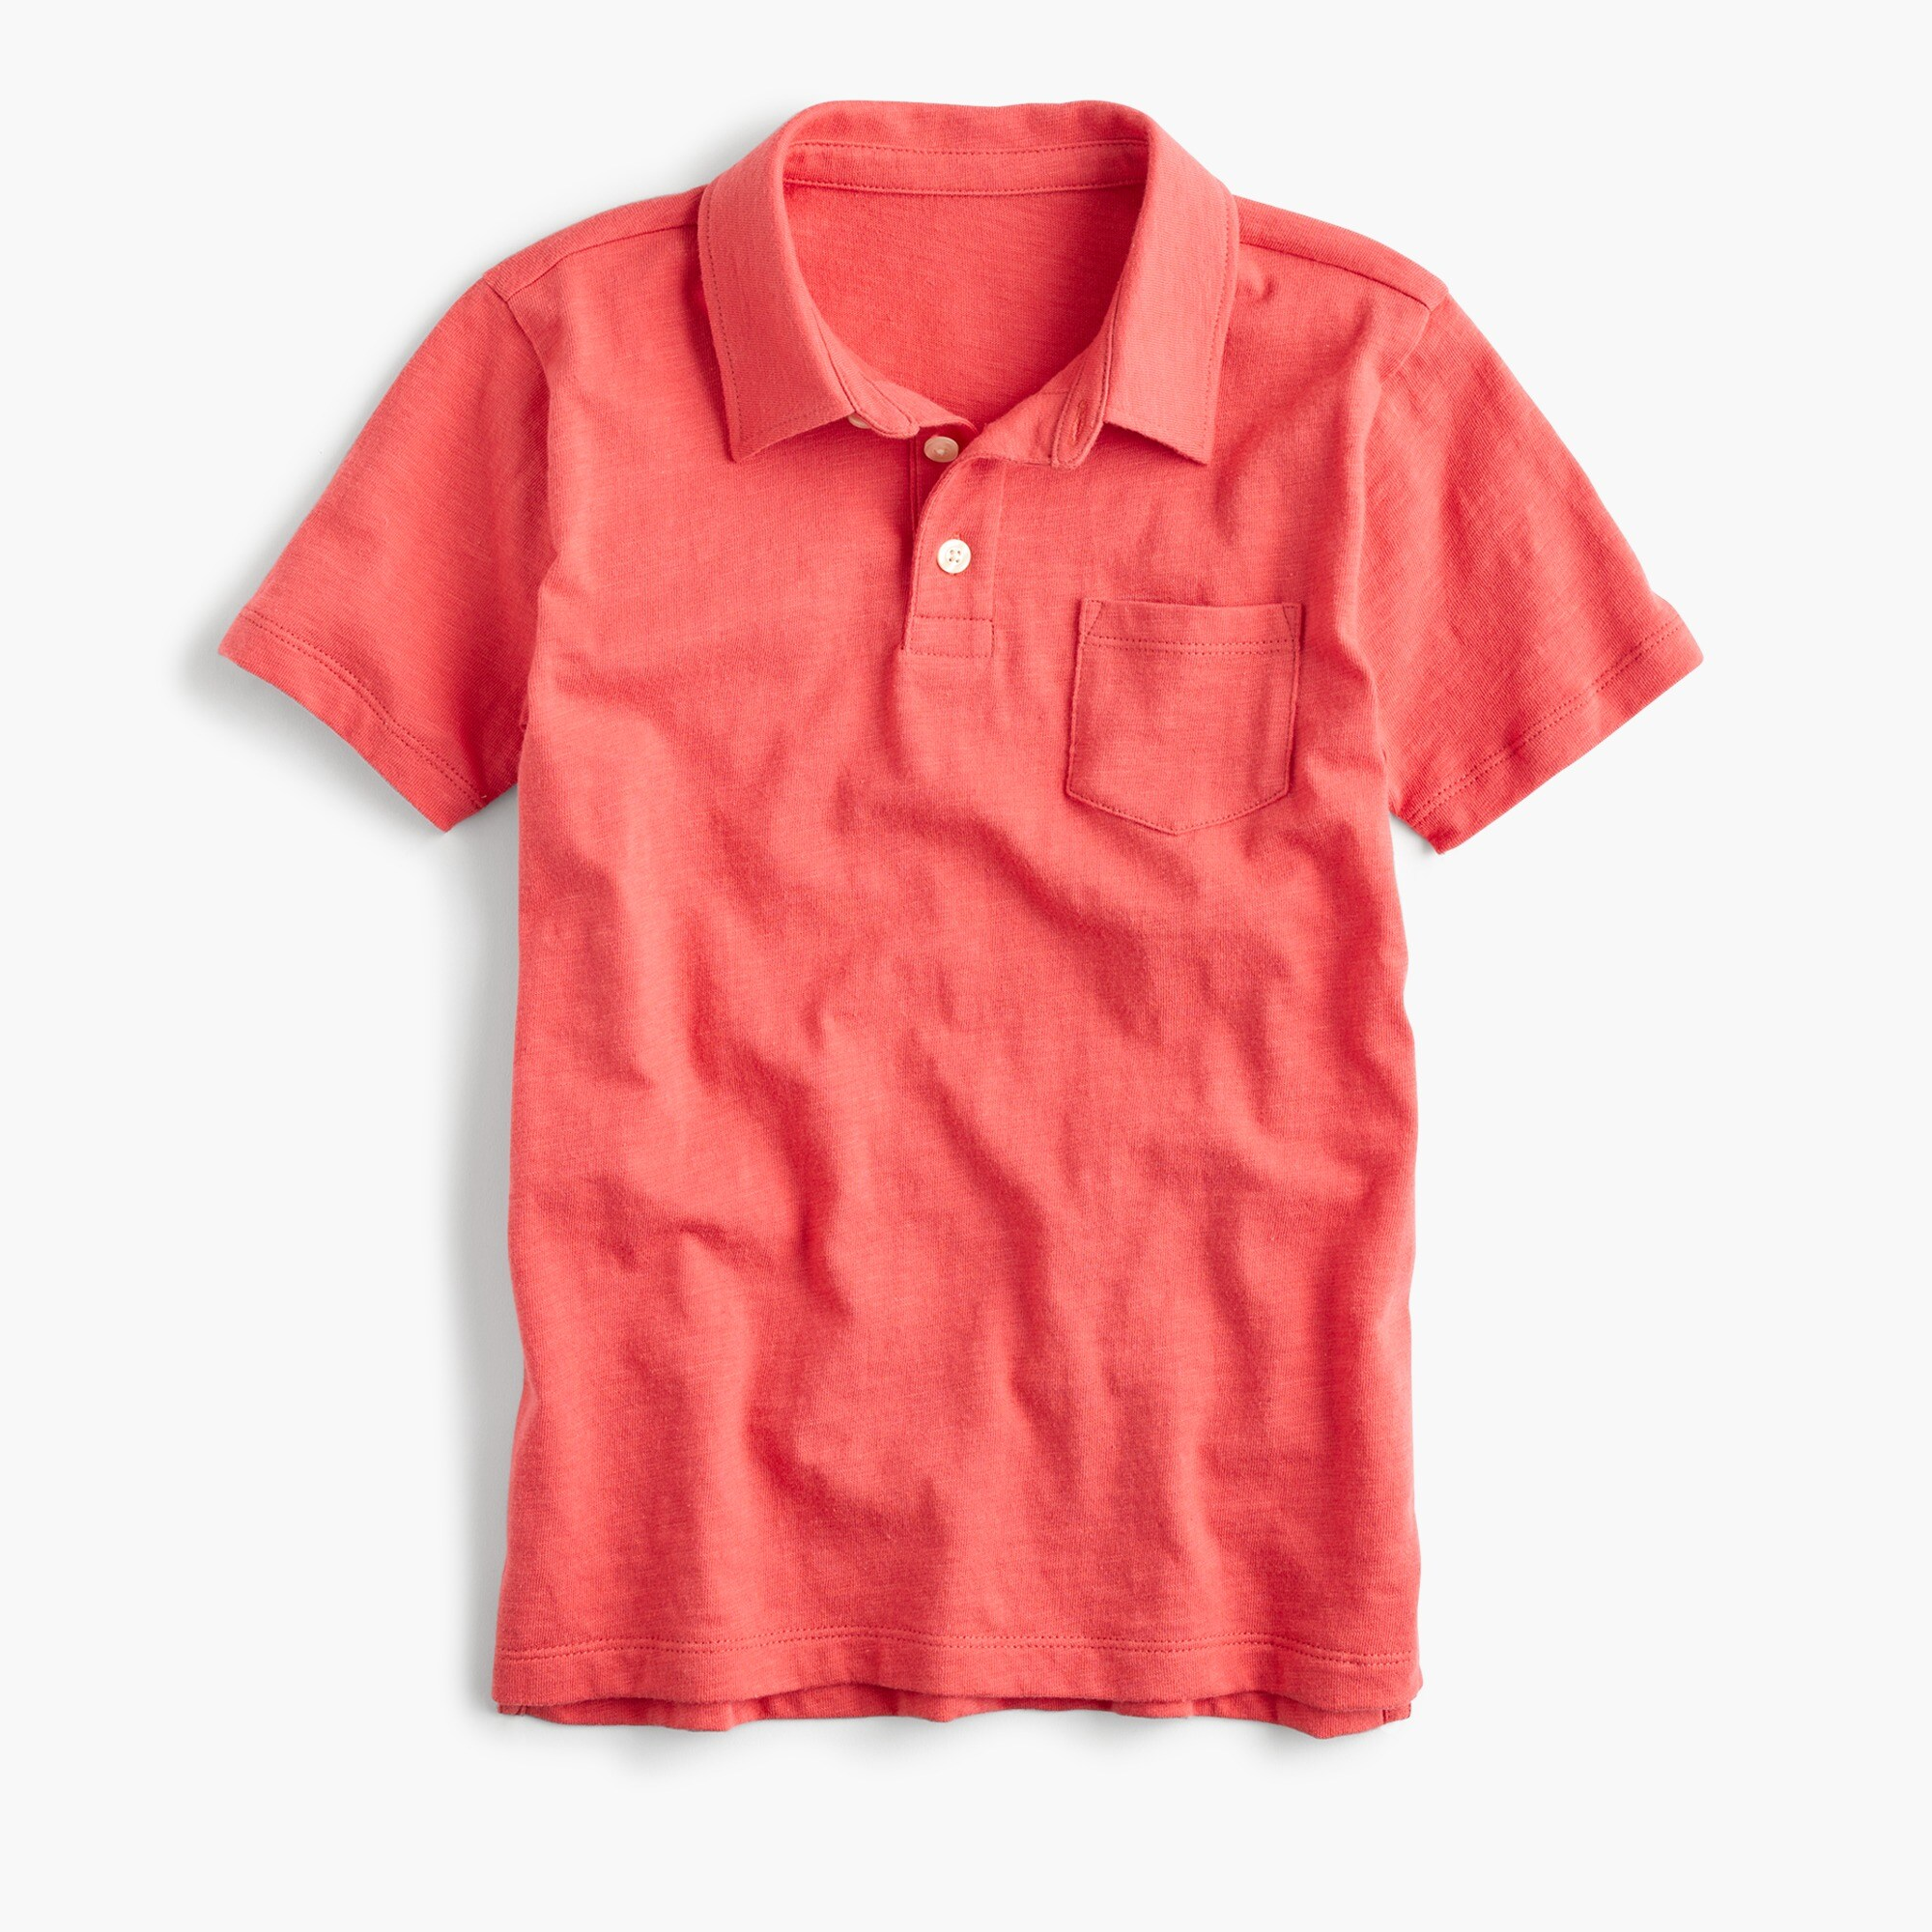 Image 1 for Boys' slub cotton polo shirt